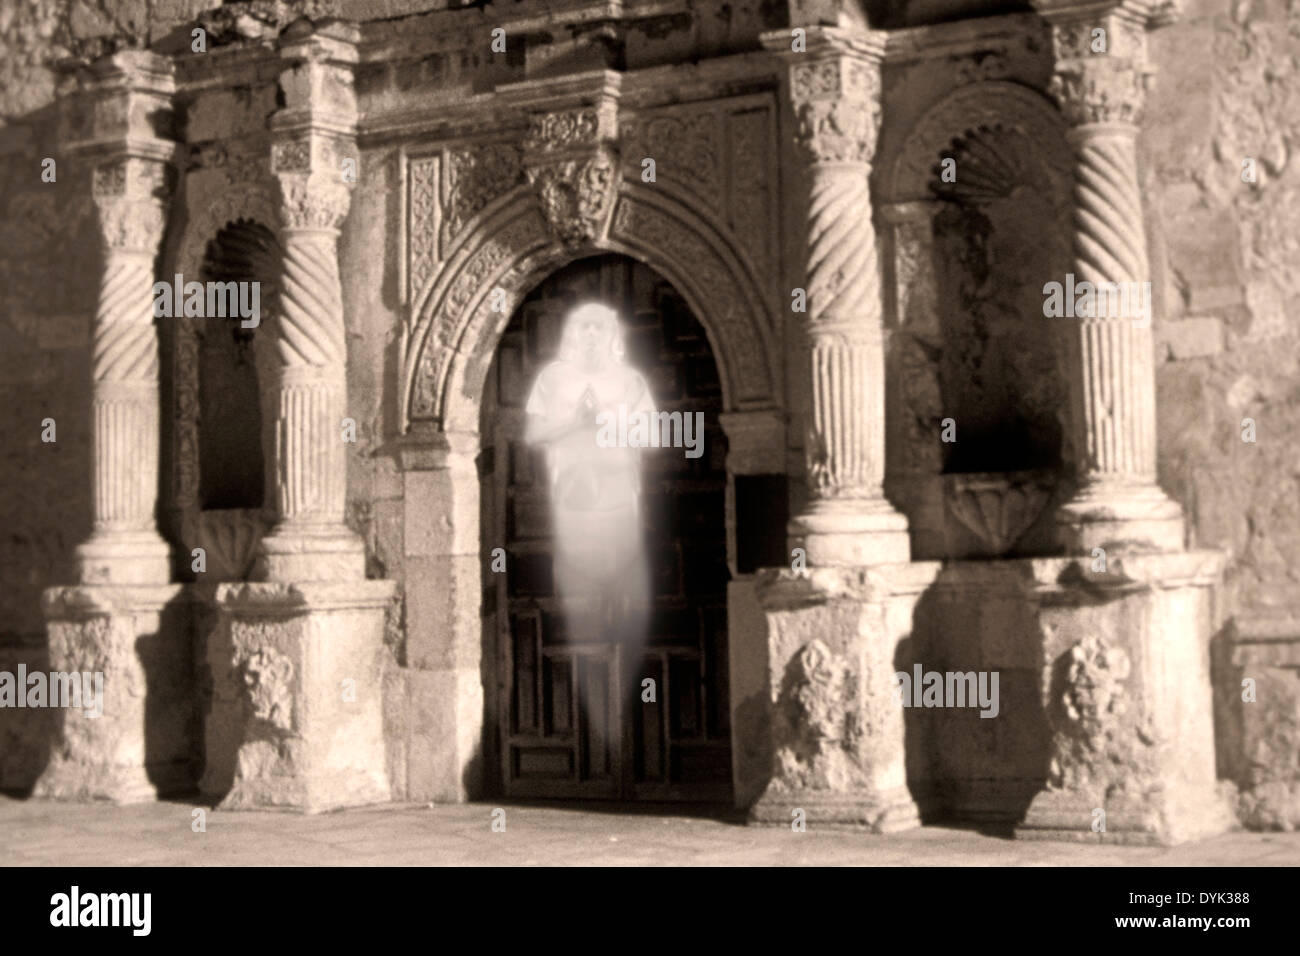 Ghost At The Front Door Of The Alamo